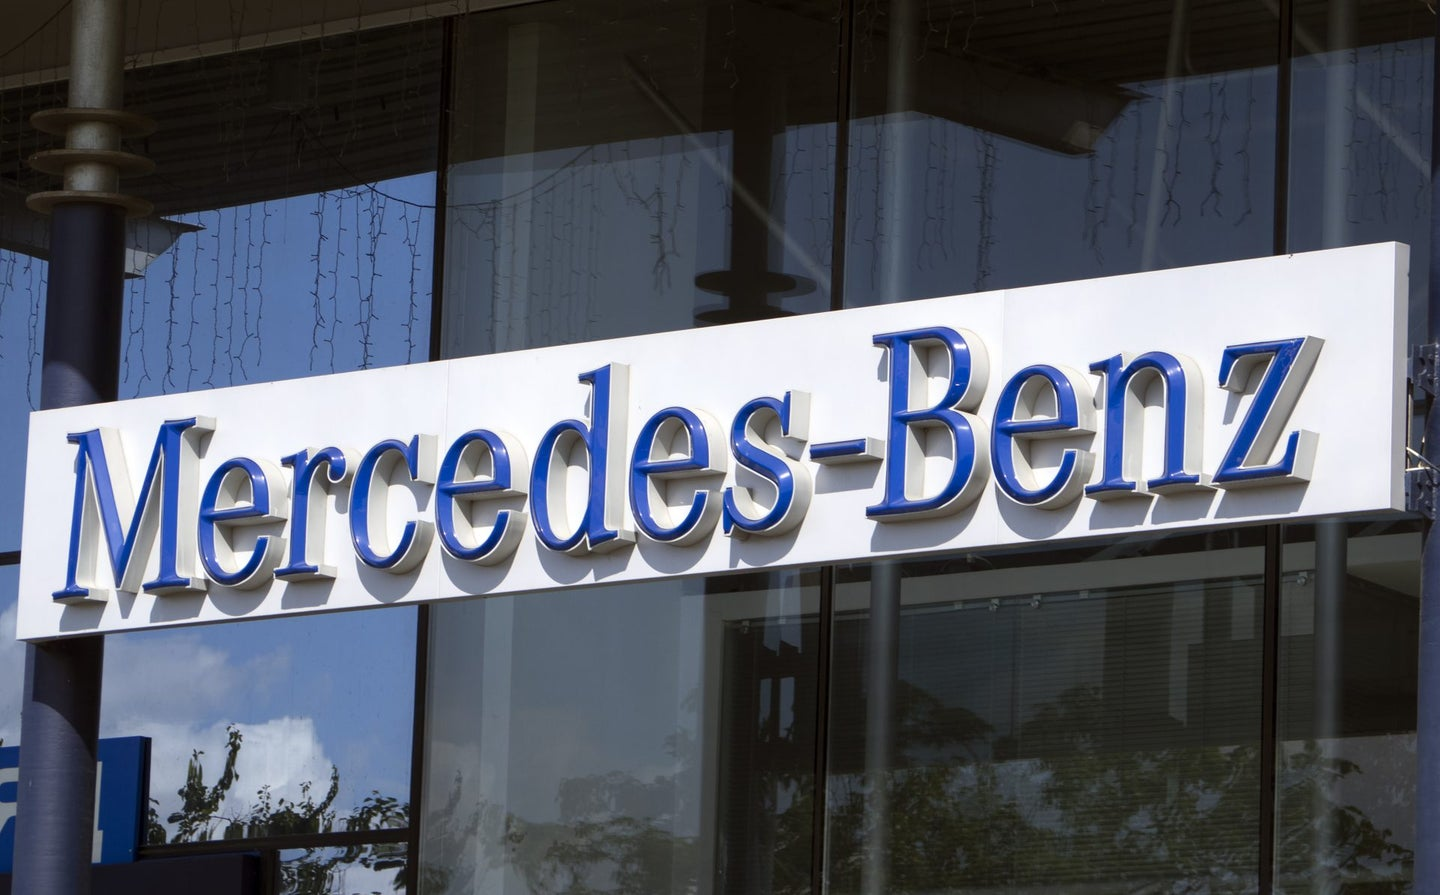 Mercedes-Benz sign. Mercedes-Benz is a division of Daimler